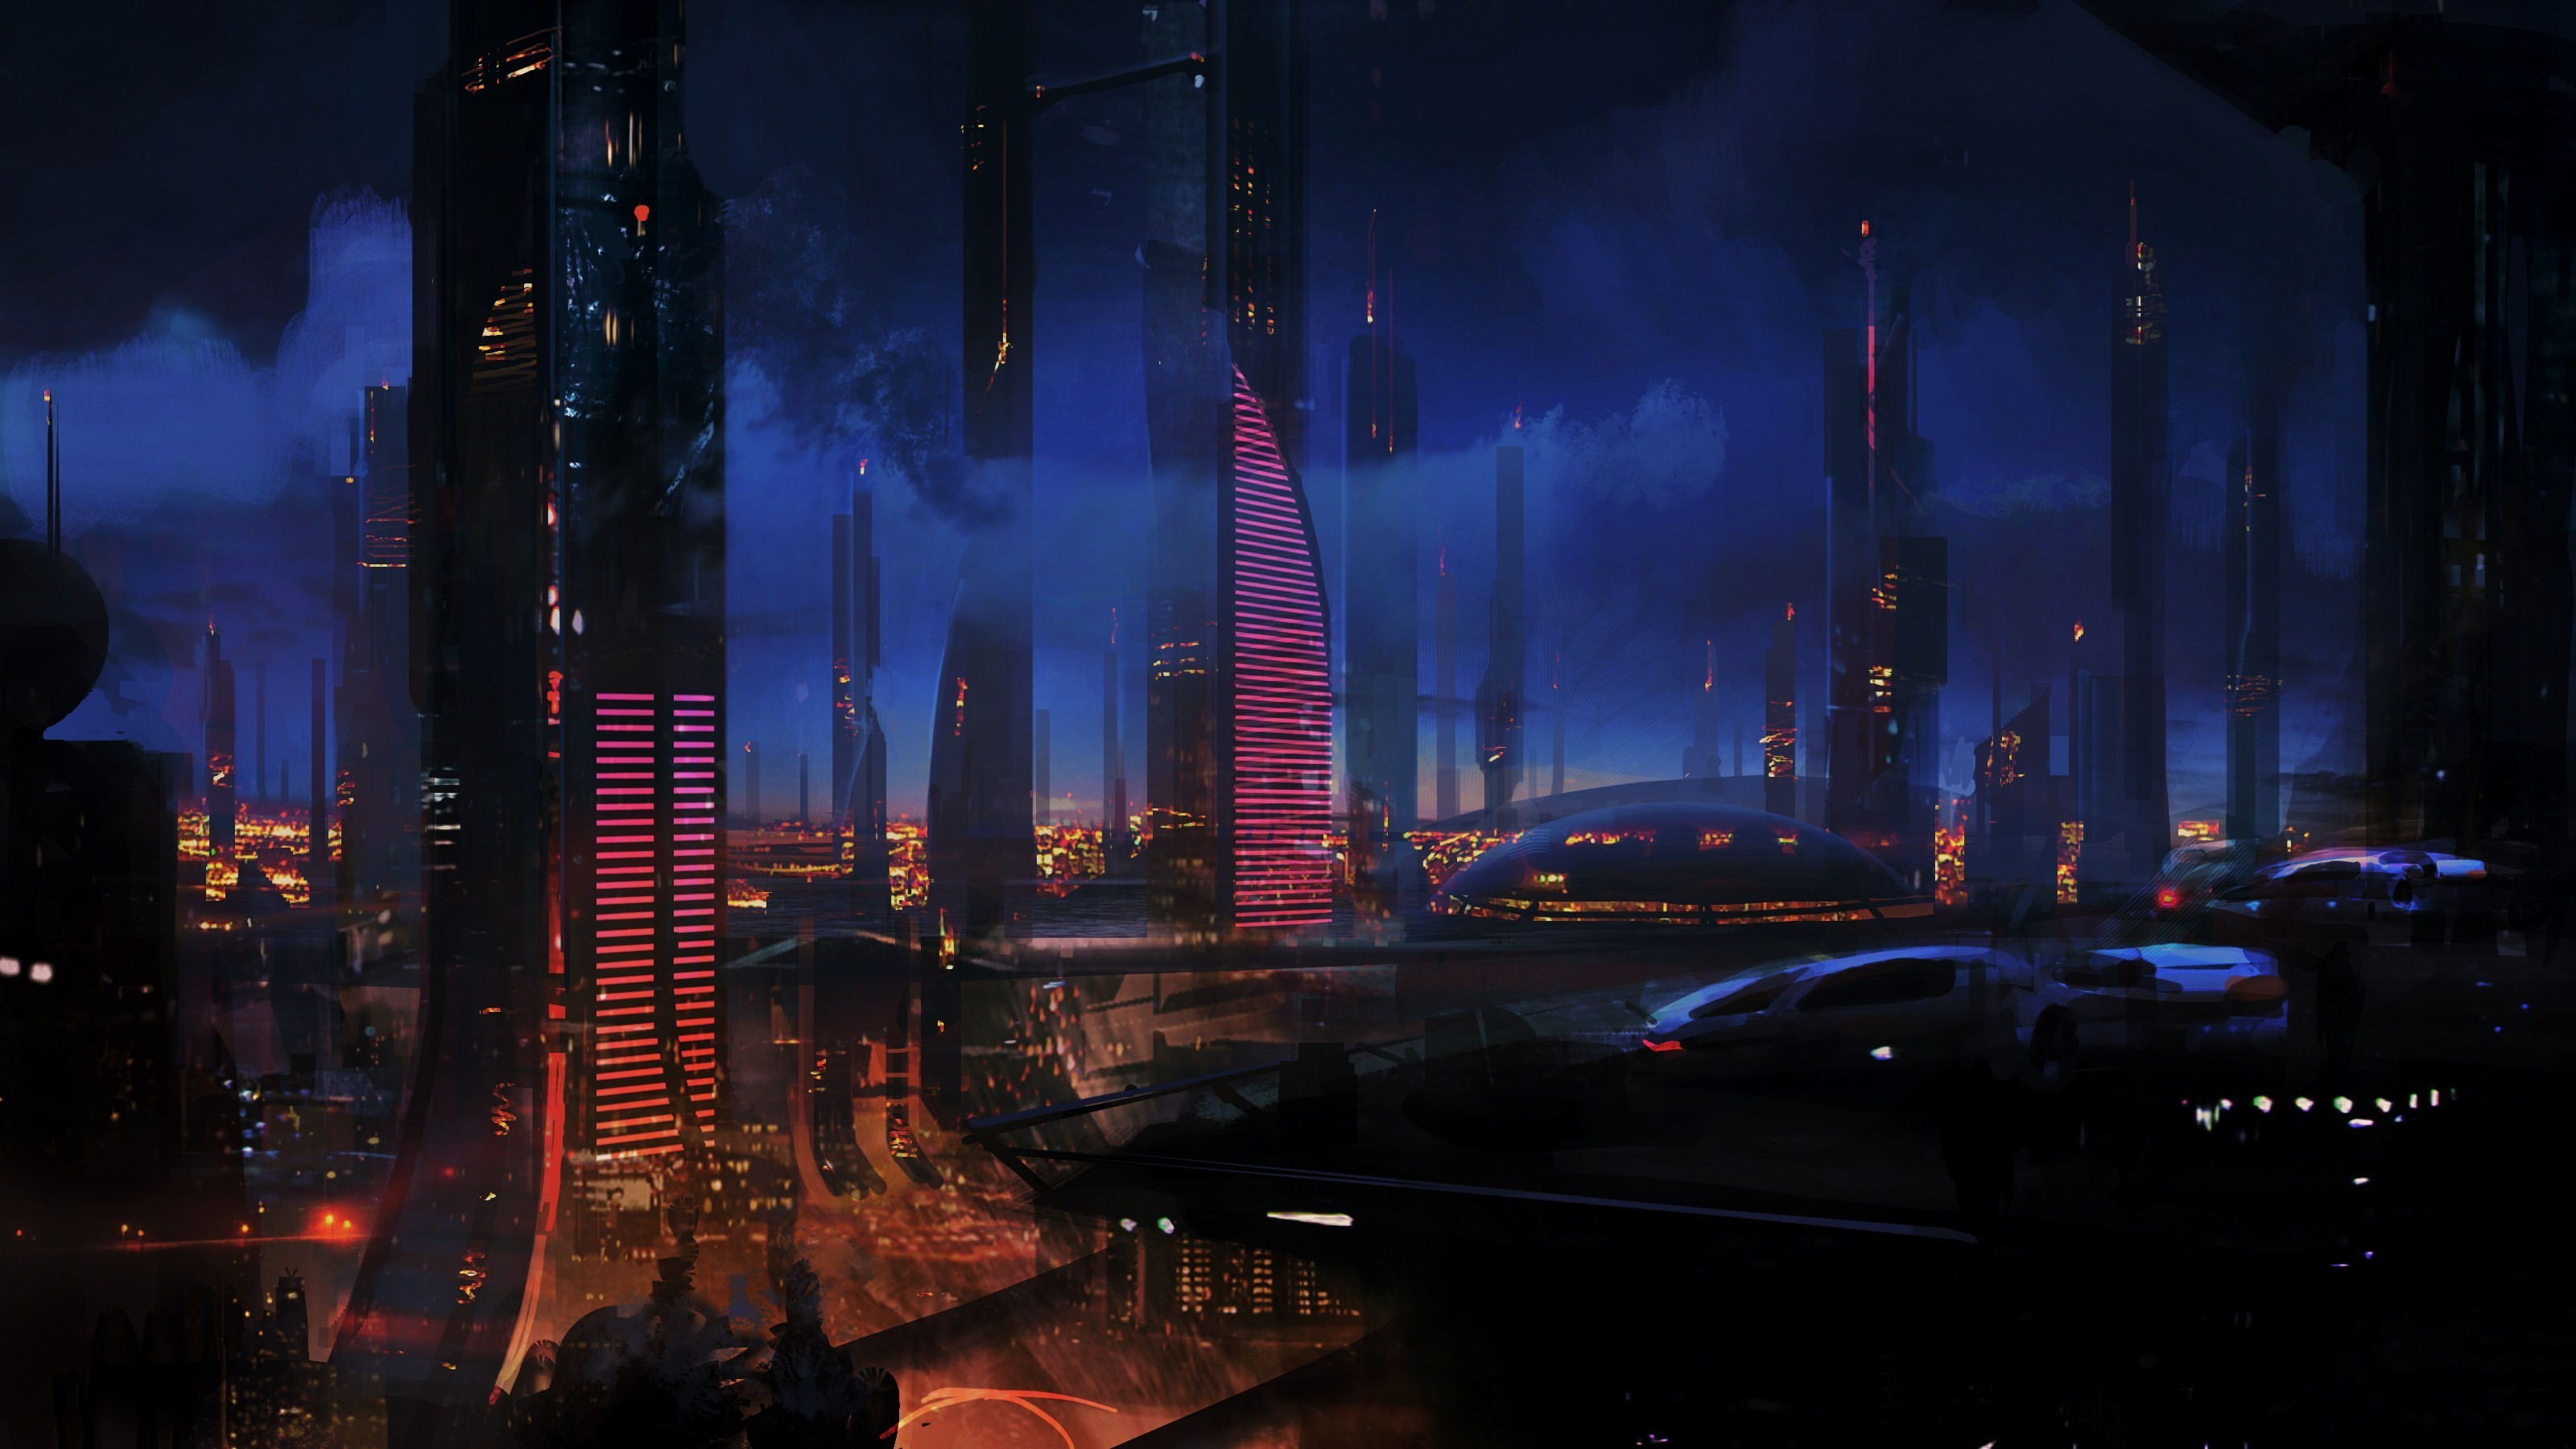 cityscapes skylines mass effect HD Wallpaper